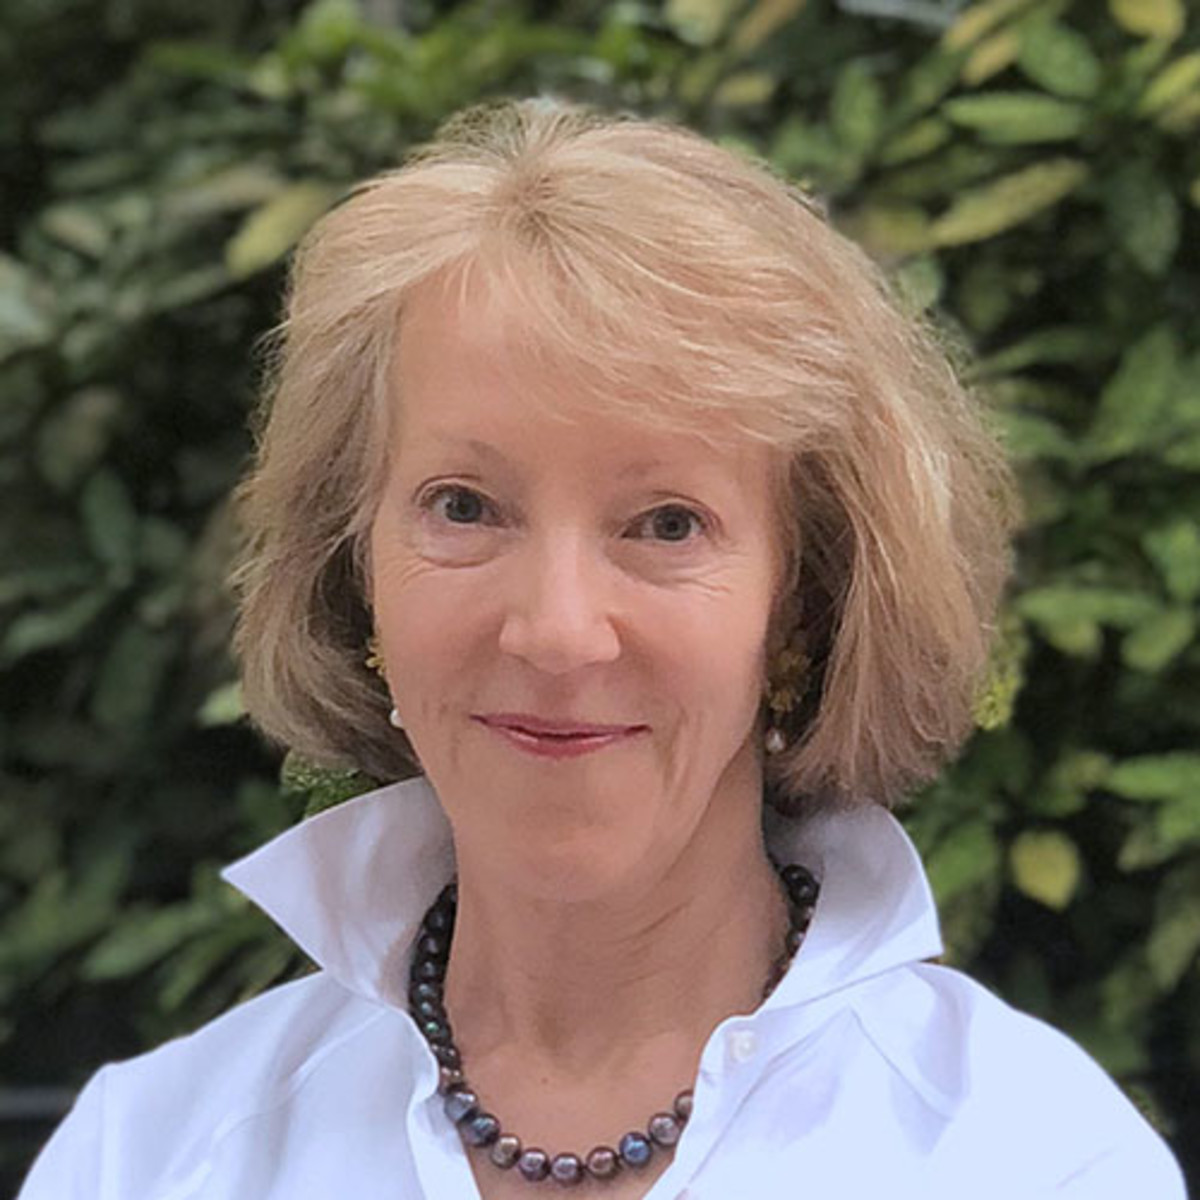 Rosemary Ripley, CEO of Better World Acquisition Corp and N*GEN